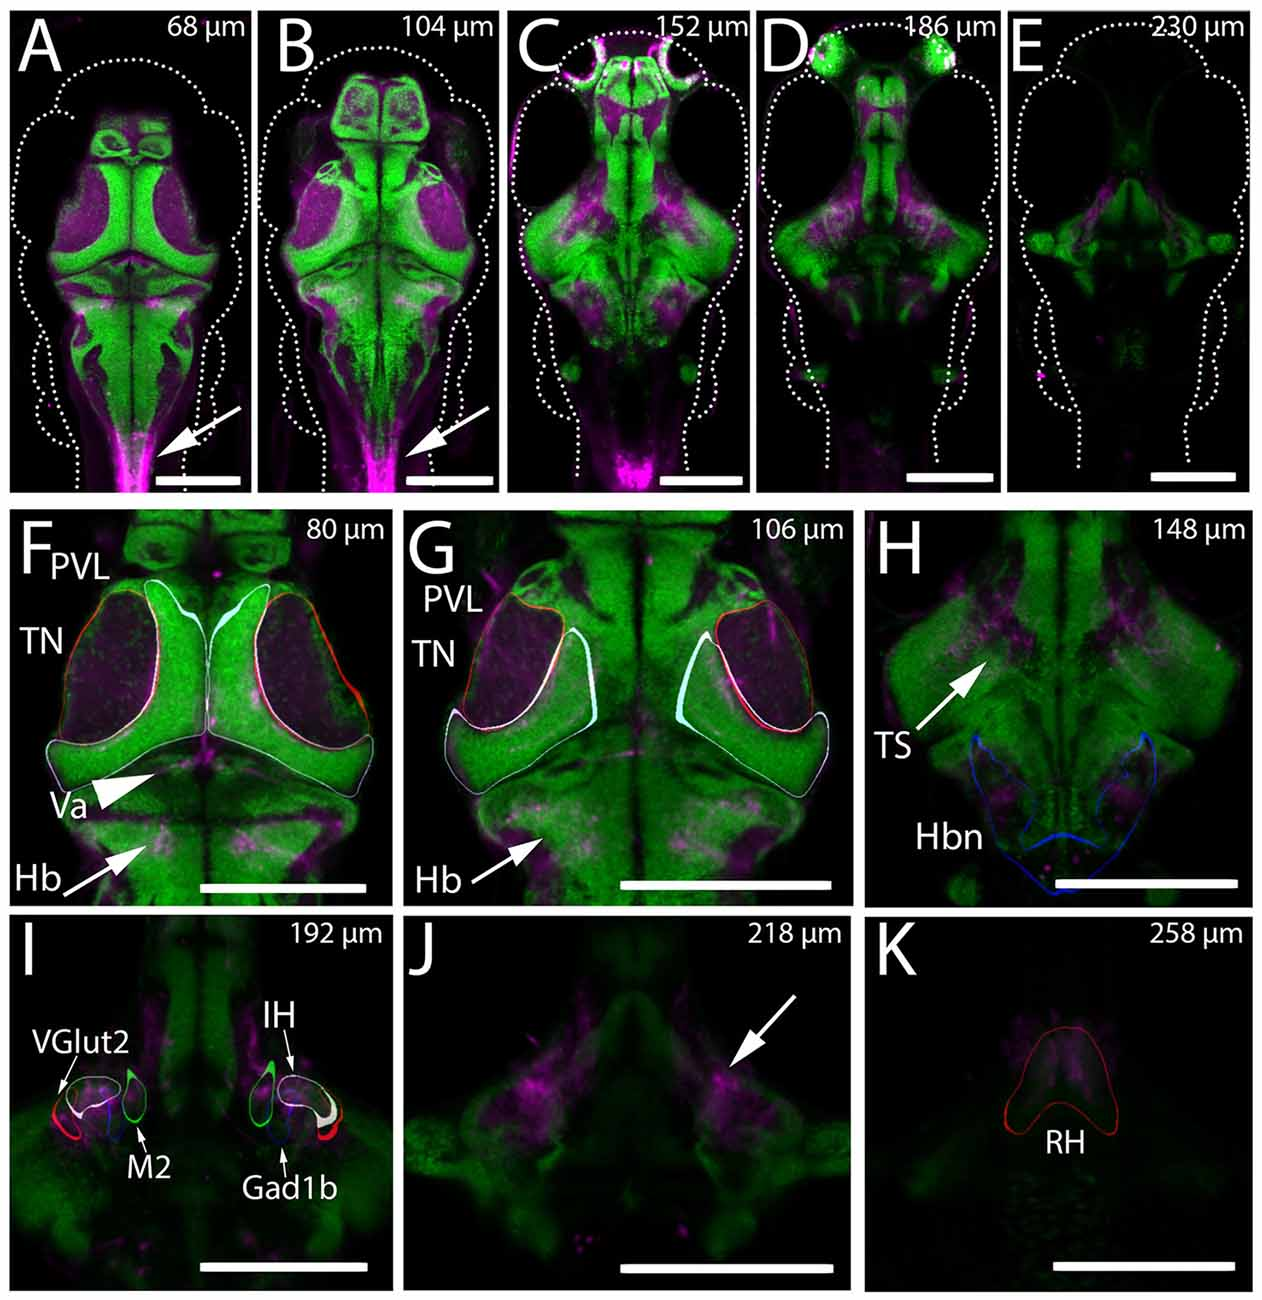 Frontiers | Hypothalamic Projections to the Optic Tectum in ... on